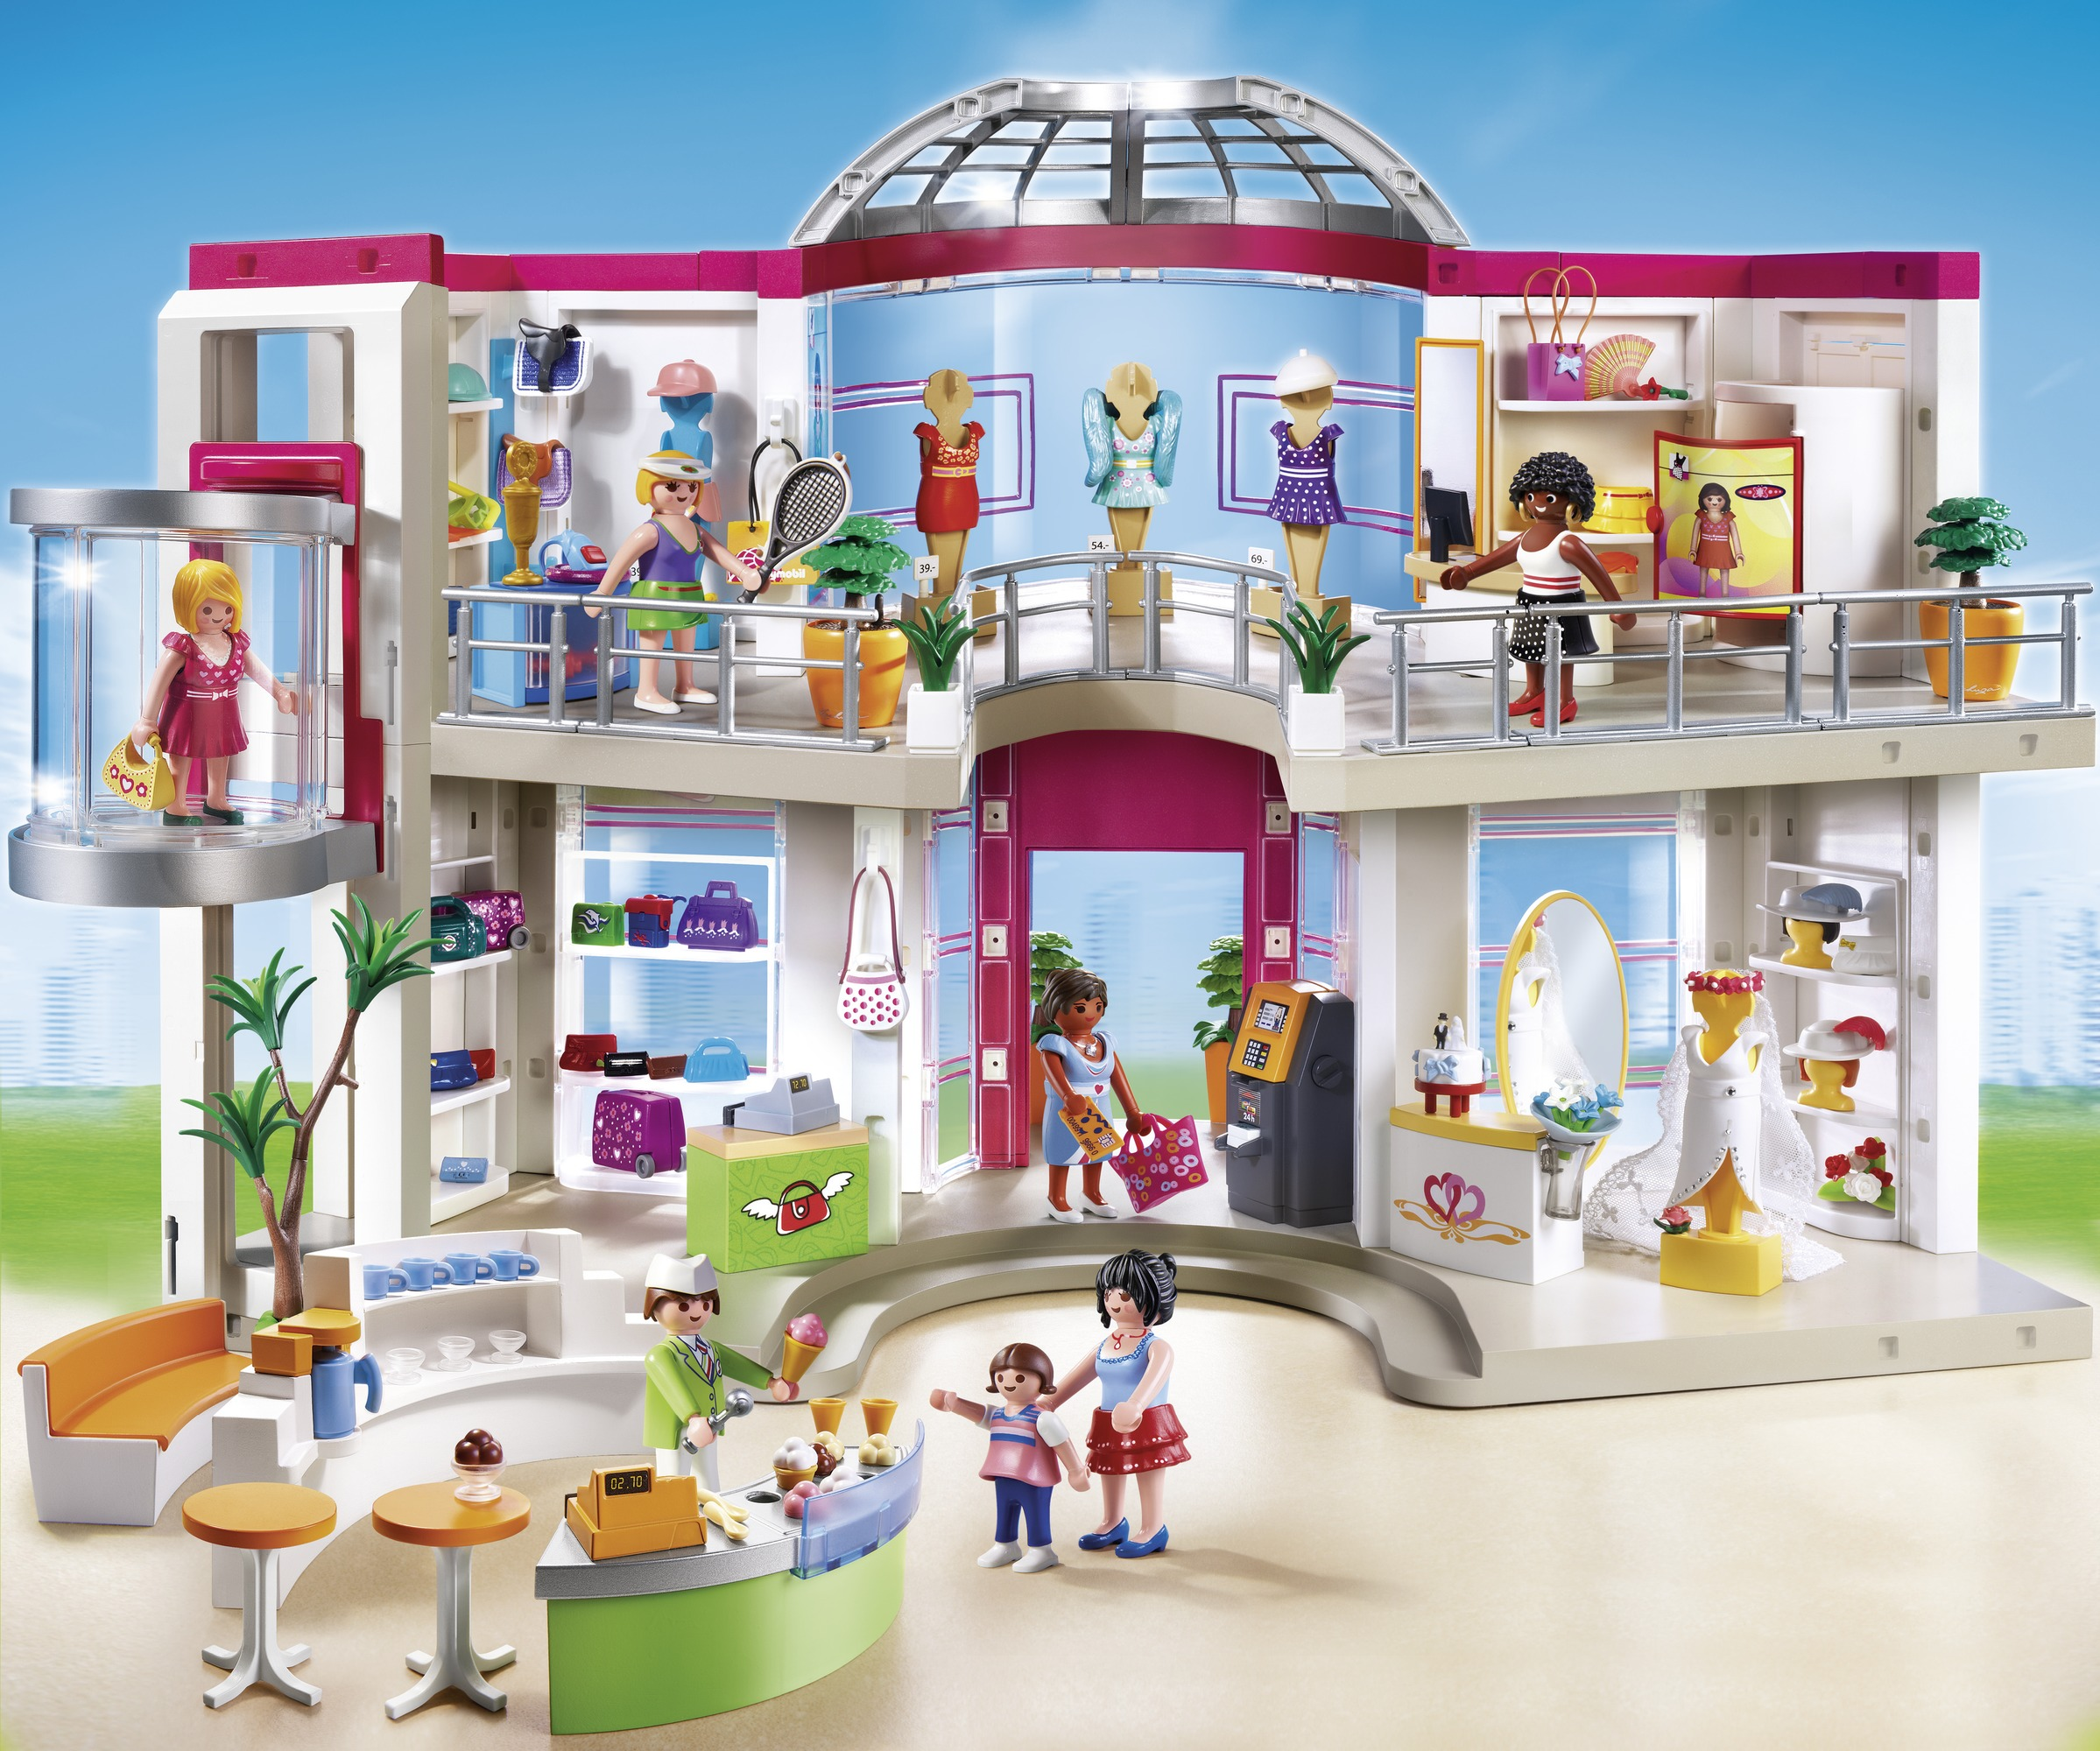 Playmobil explose encore son record loisirs culture for Lego friends salon de coiffure